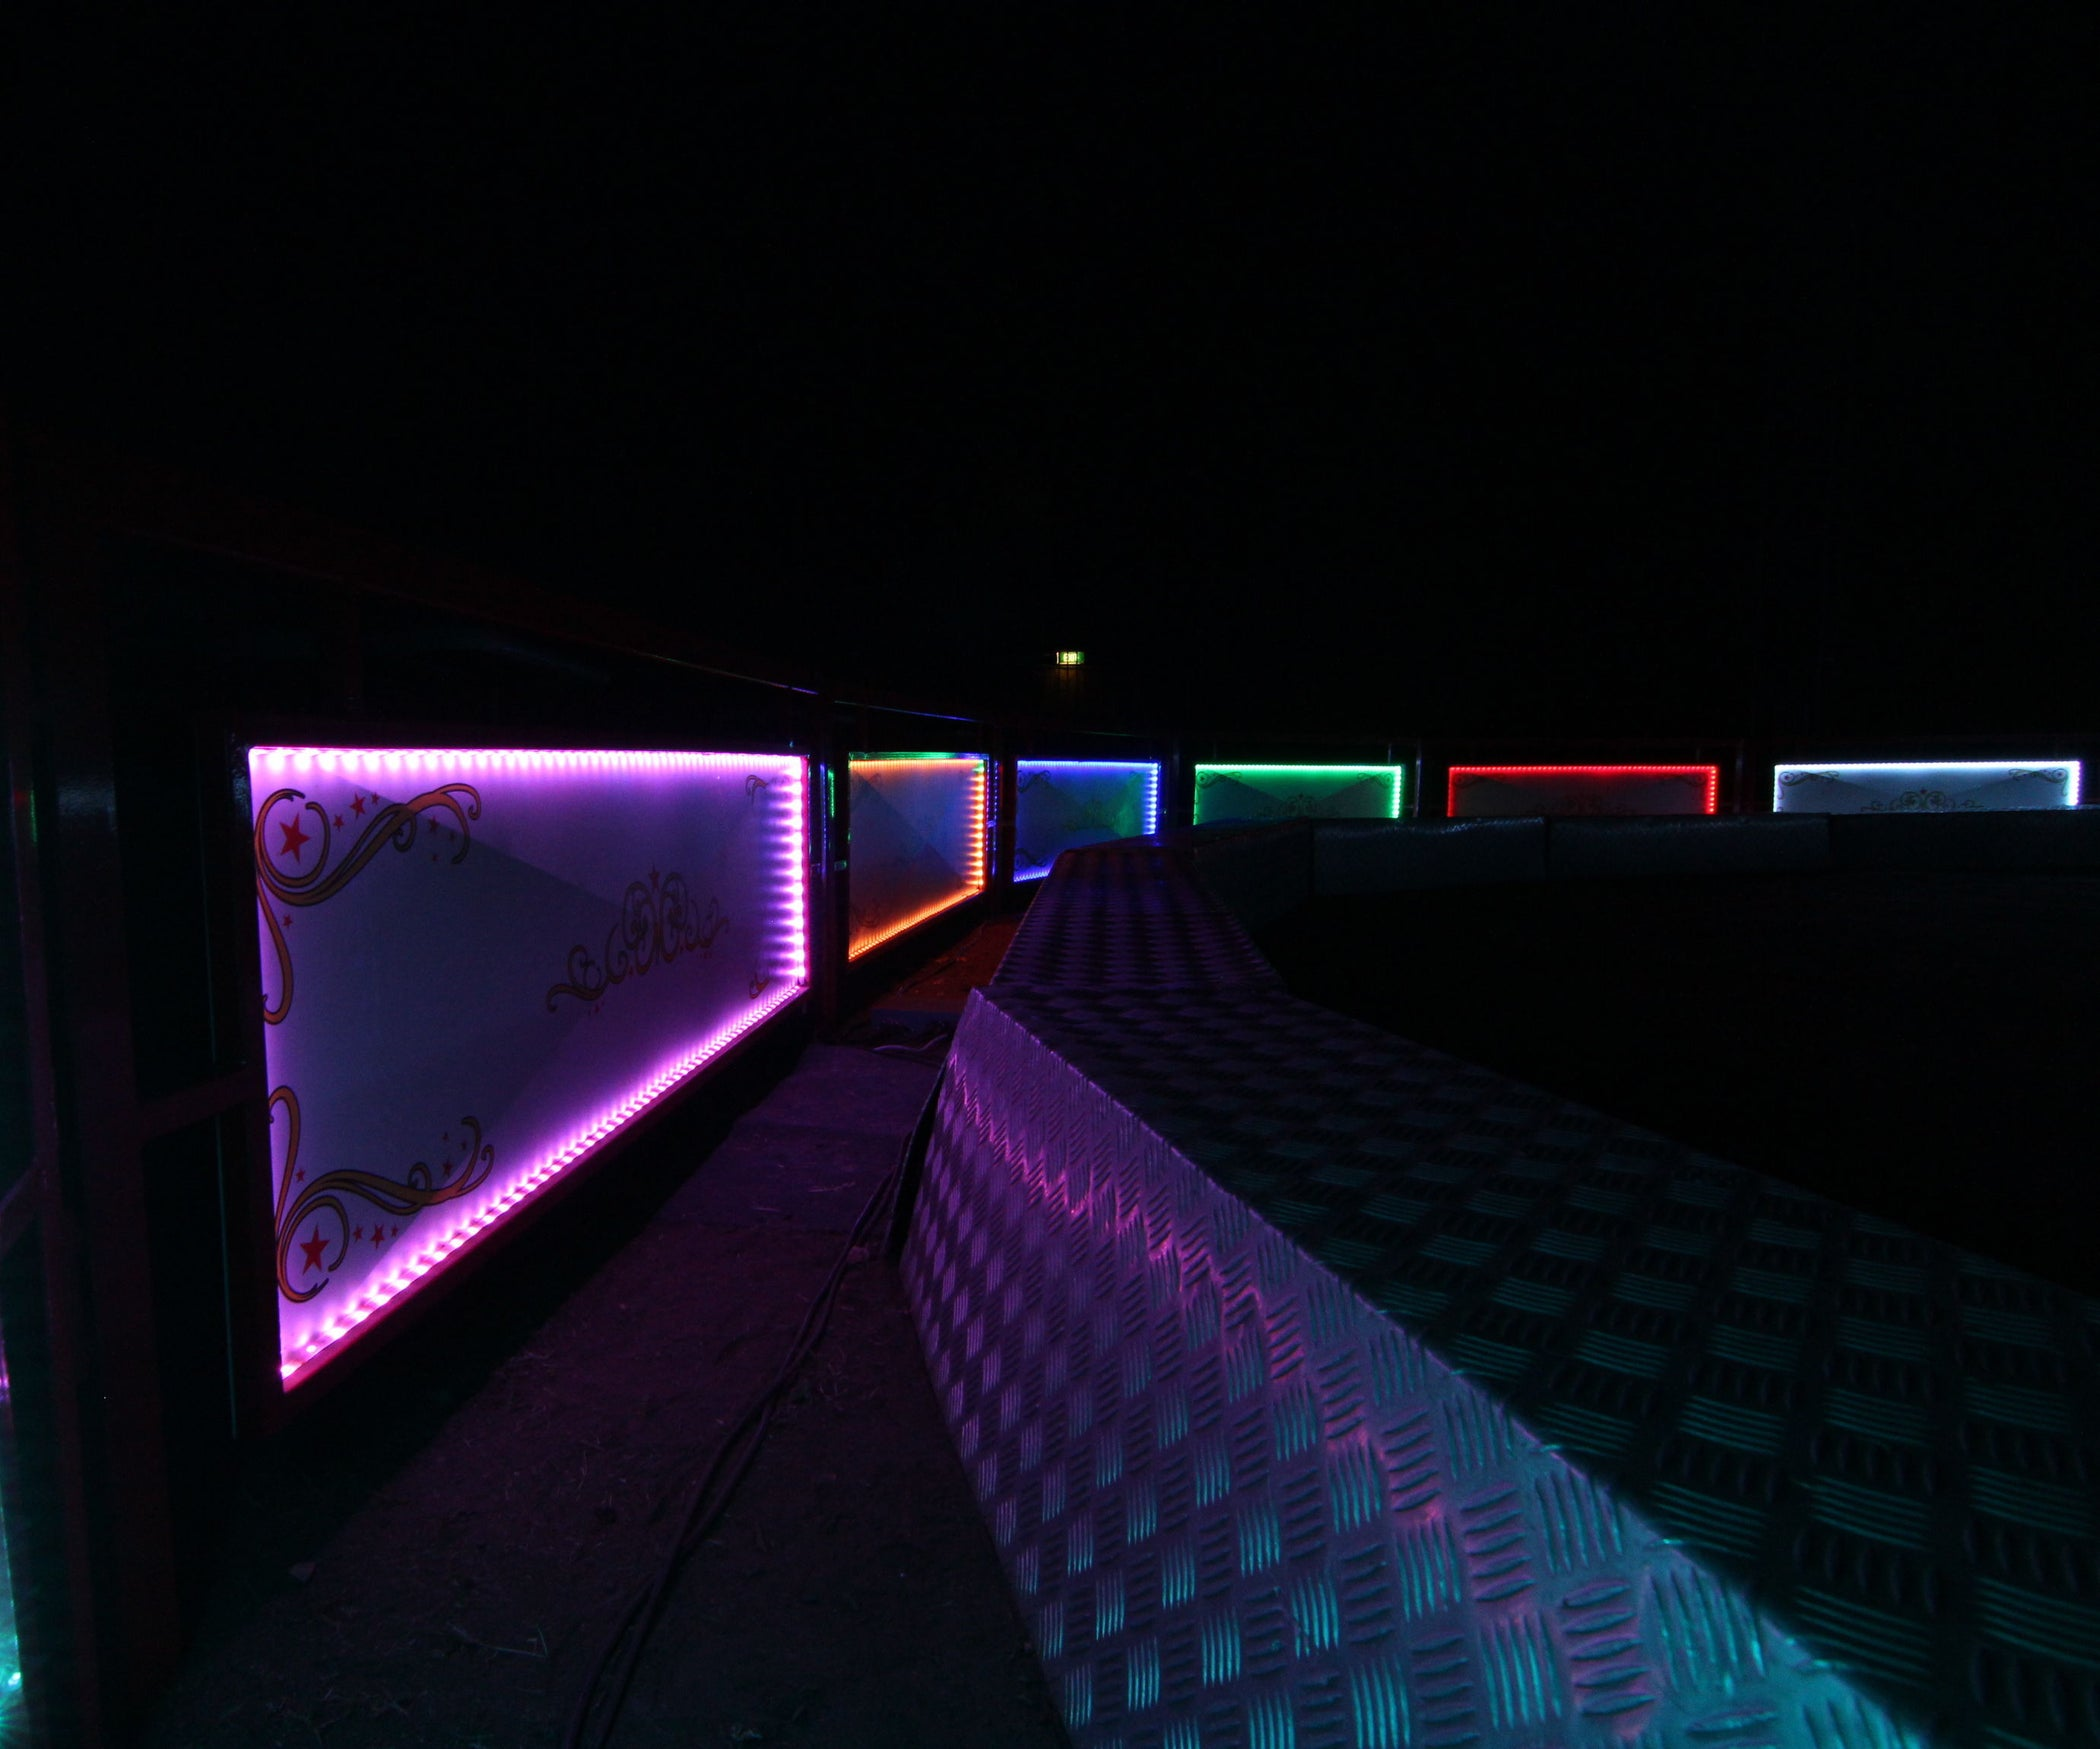 Dmx Led Strips 14 Steps With Pictures Quality Aluminum Printed Circuit Board Widely Used For Lights